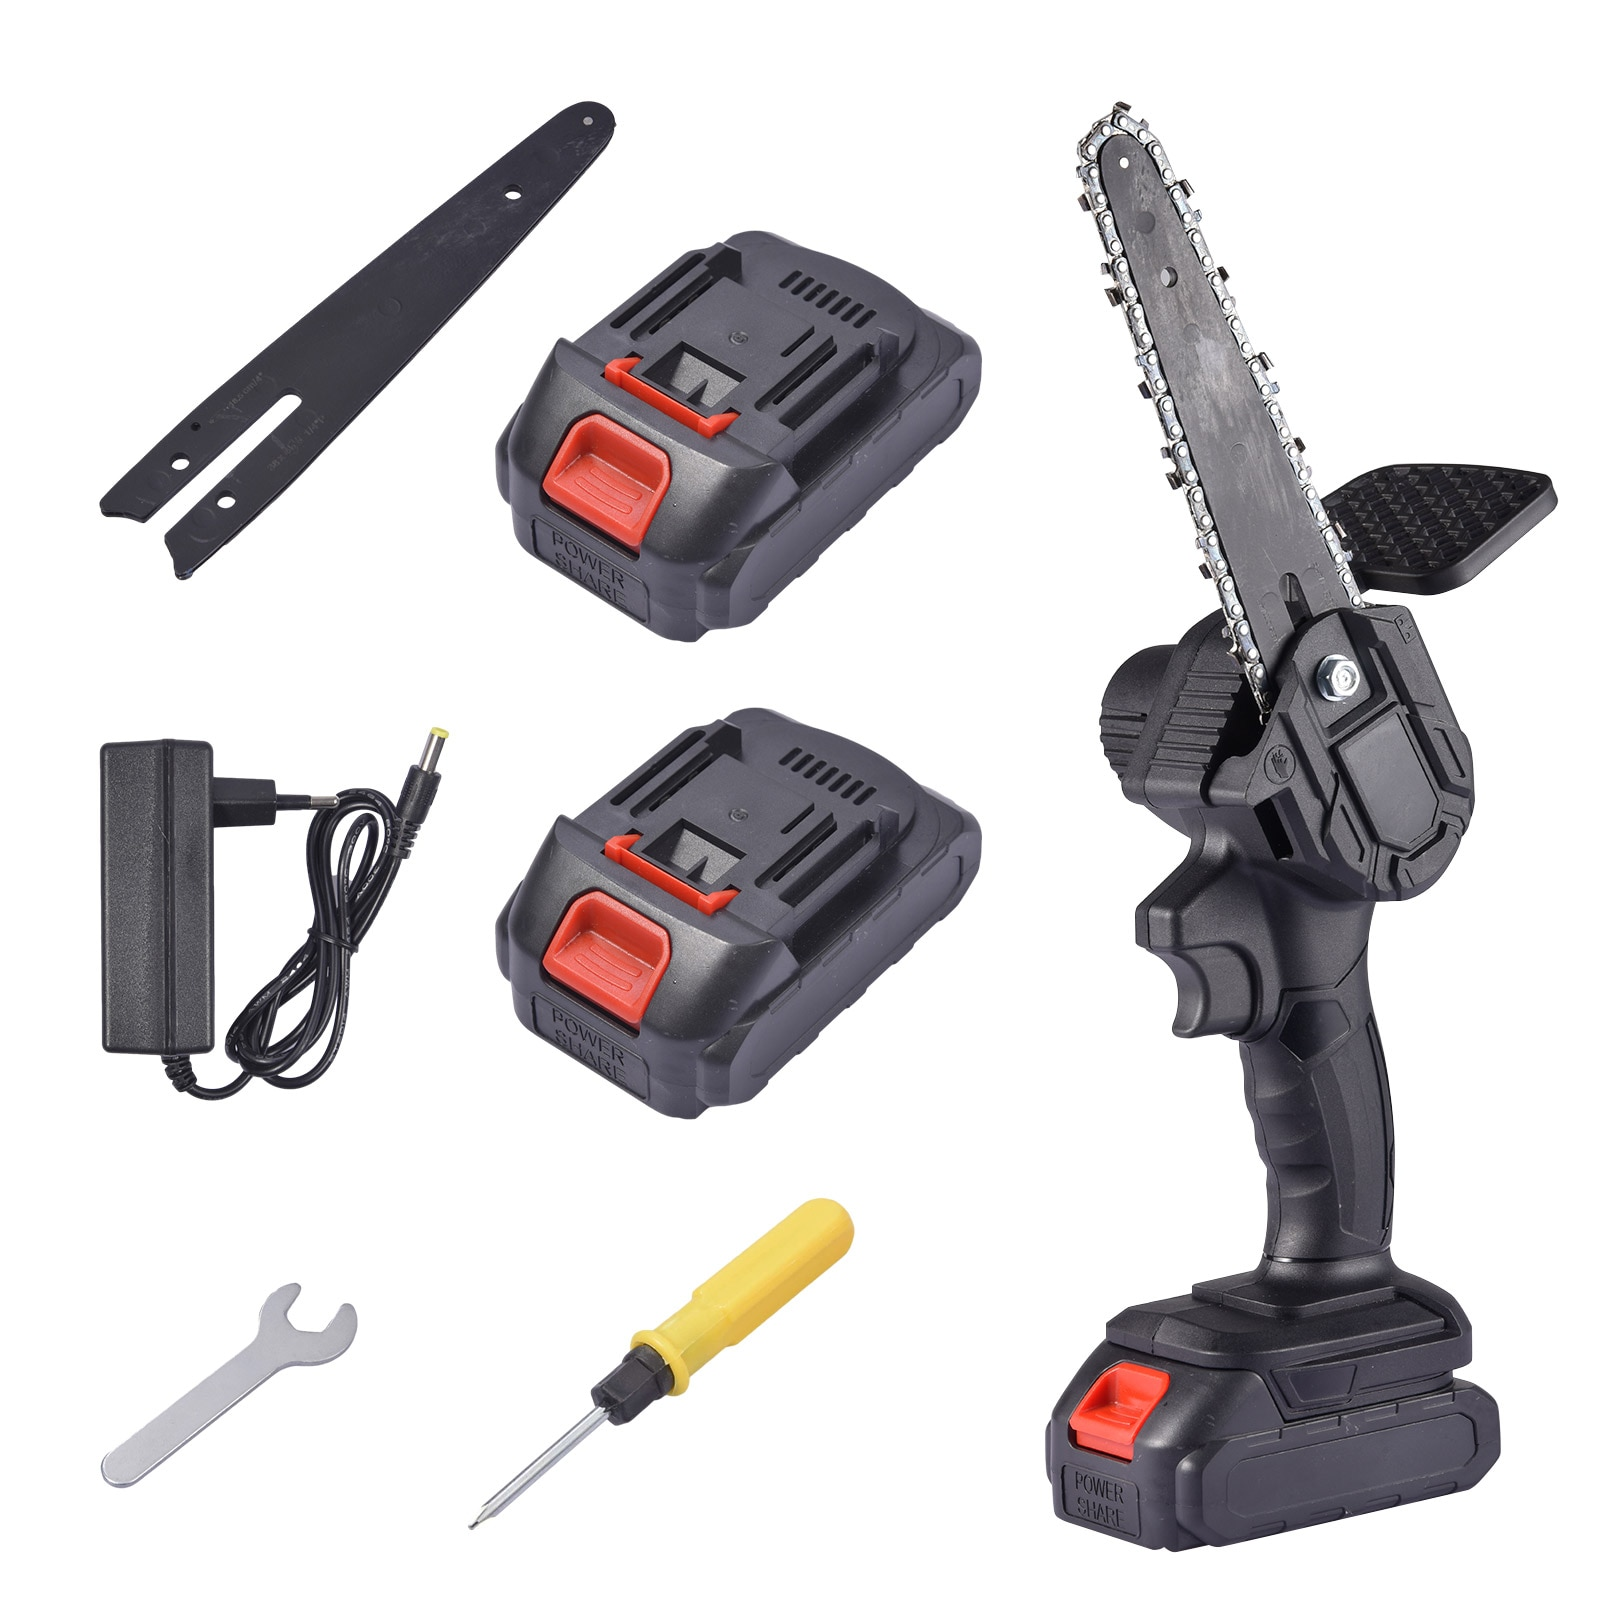 6-Inch Electric Mini Chain Saws Pruning ChainSaw Cordless Garden Tree Logging Trimming Saw For Wood